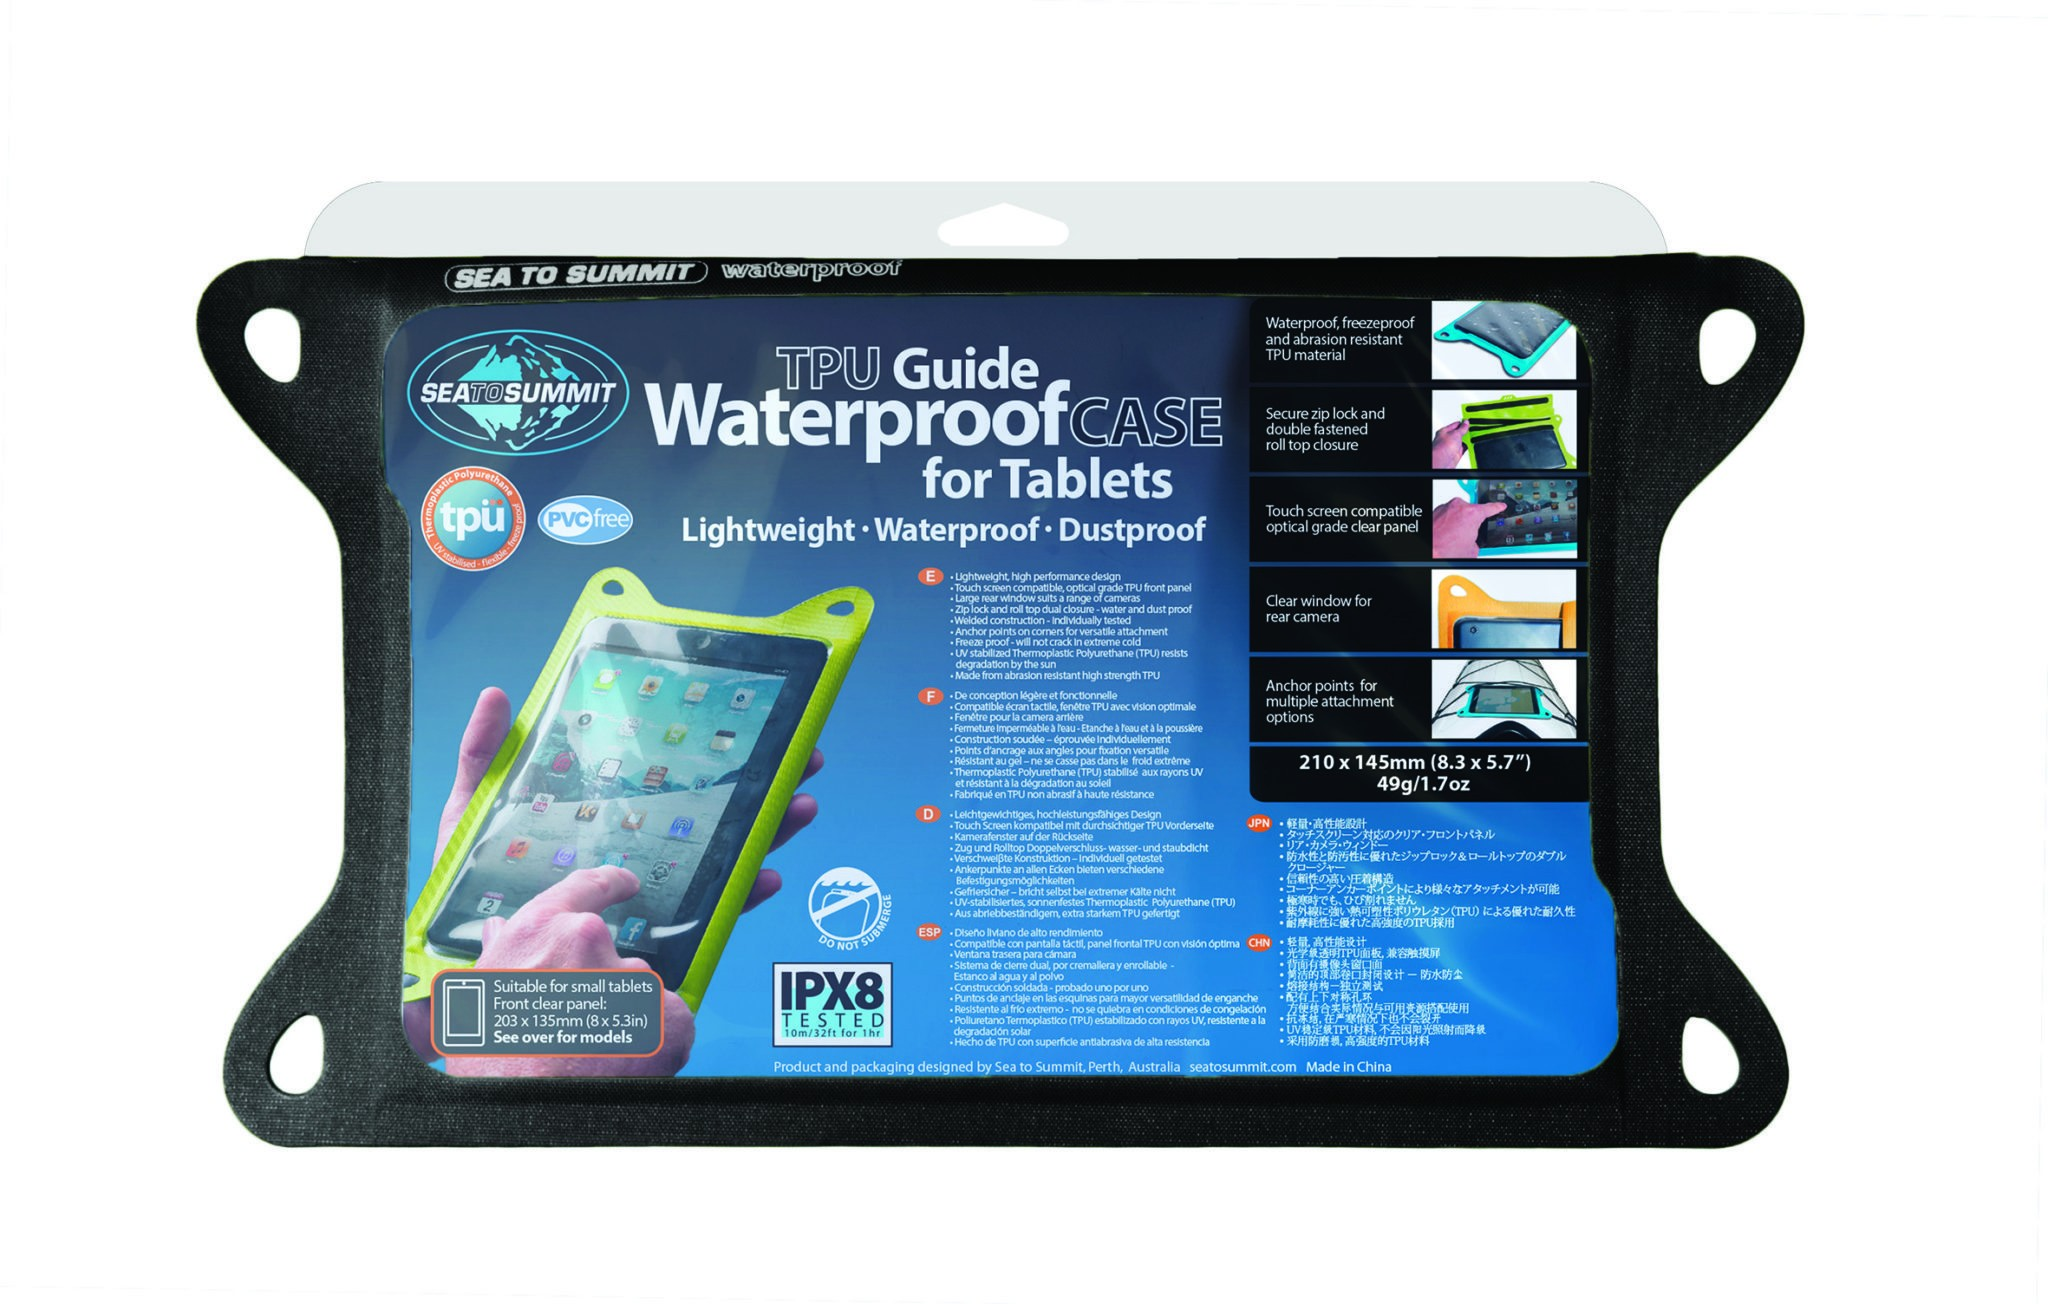 SEA TO SUMMIT TPU Guide Waterpfoof Case For Tamblets